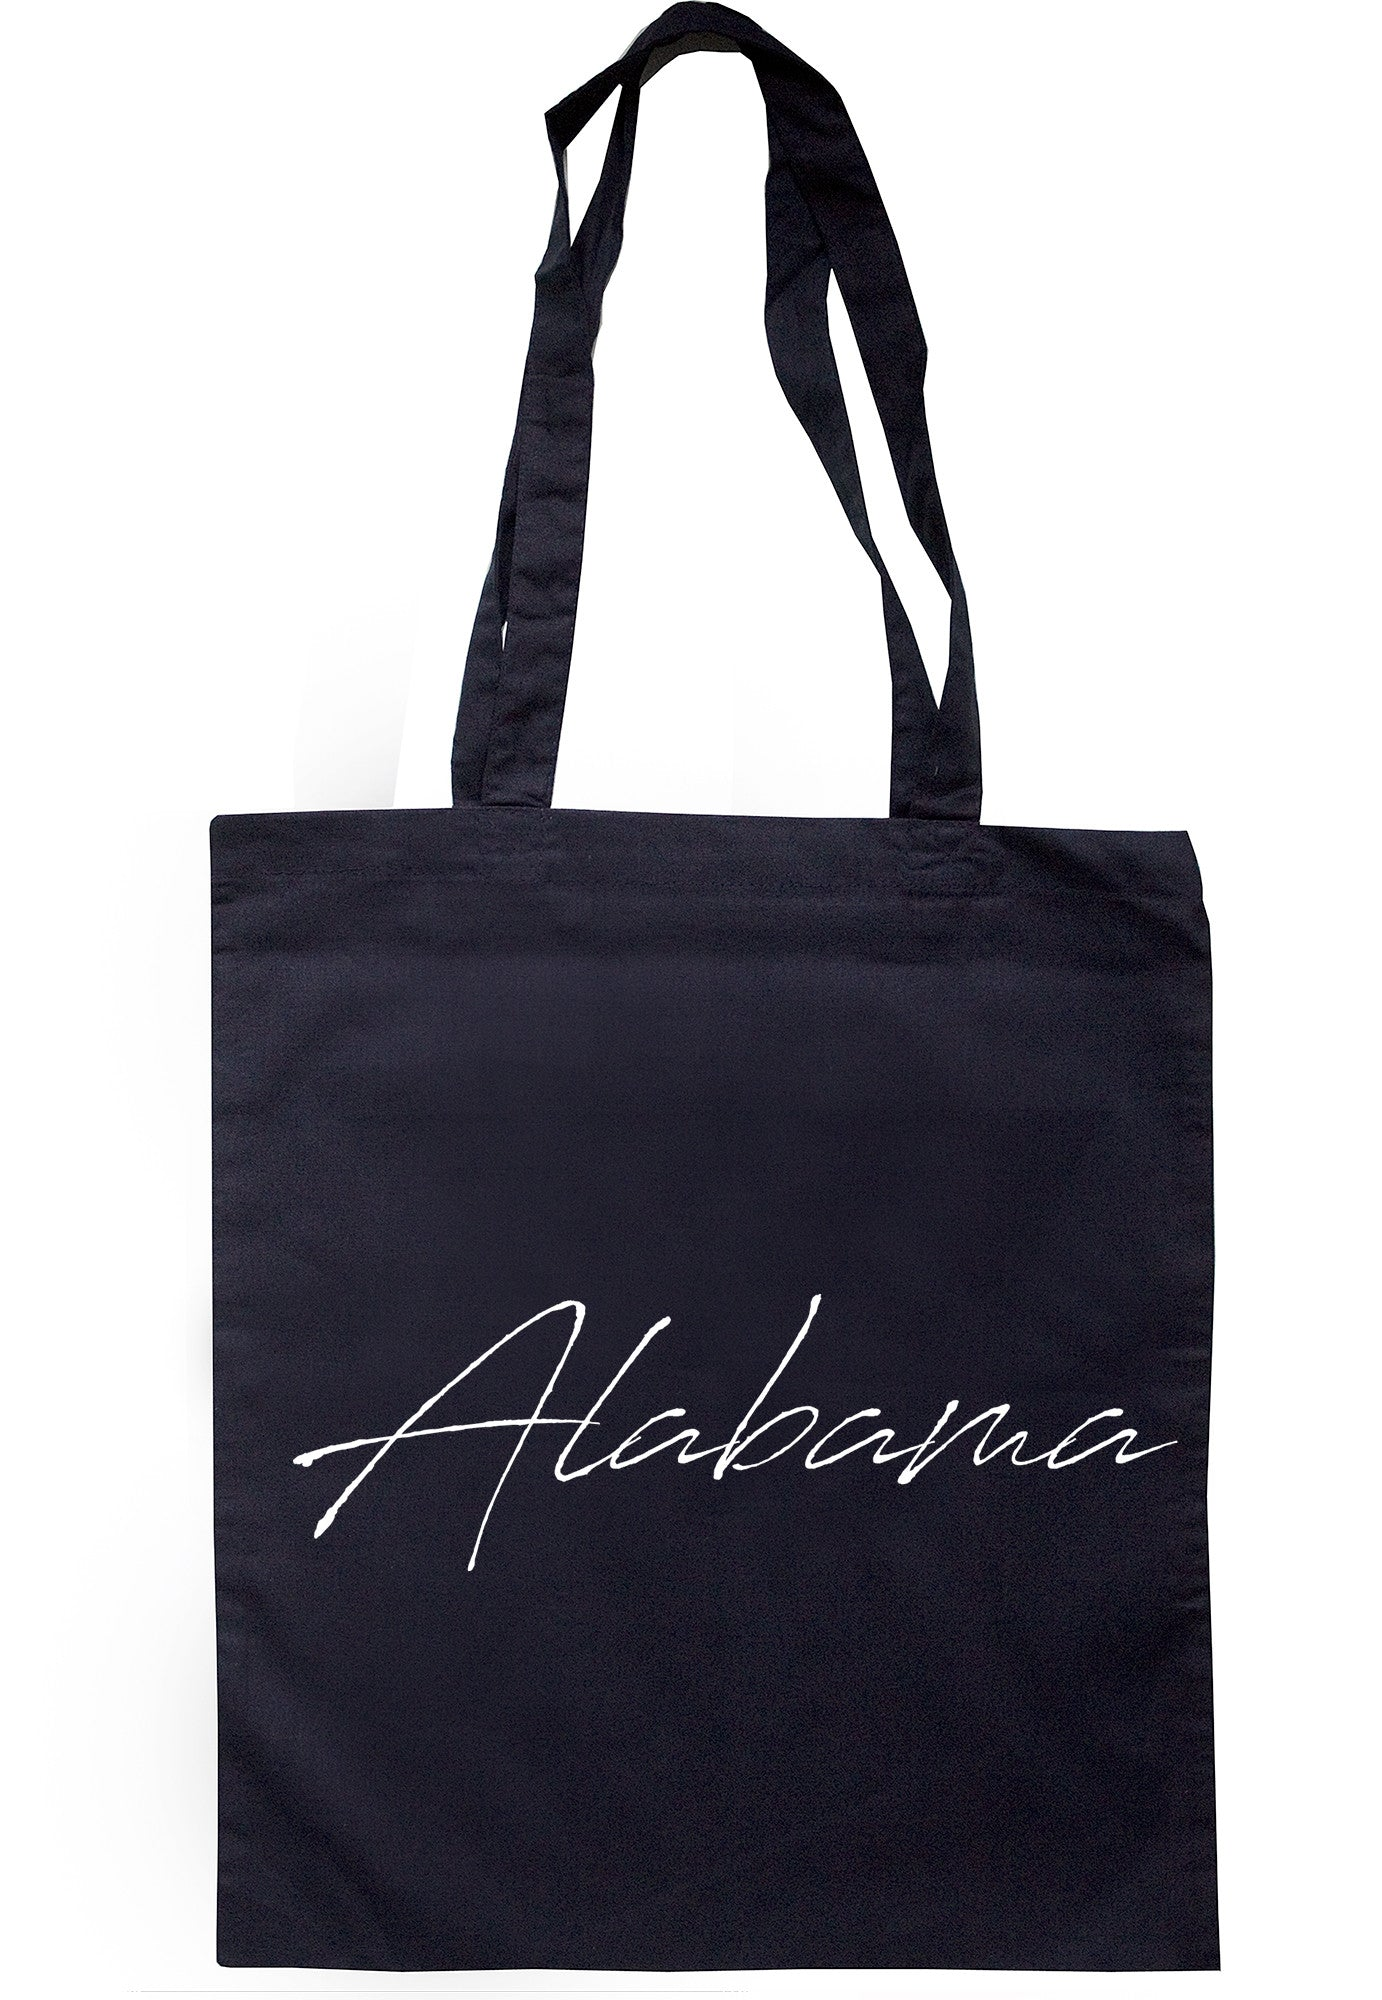 Alabama Script Tote Bag TB1510